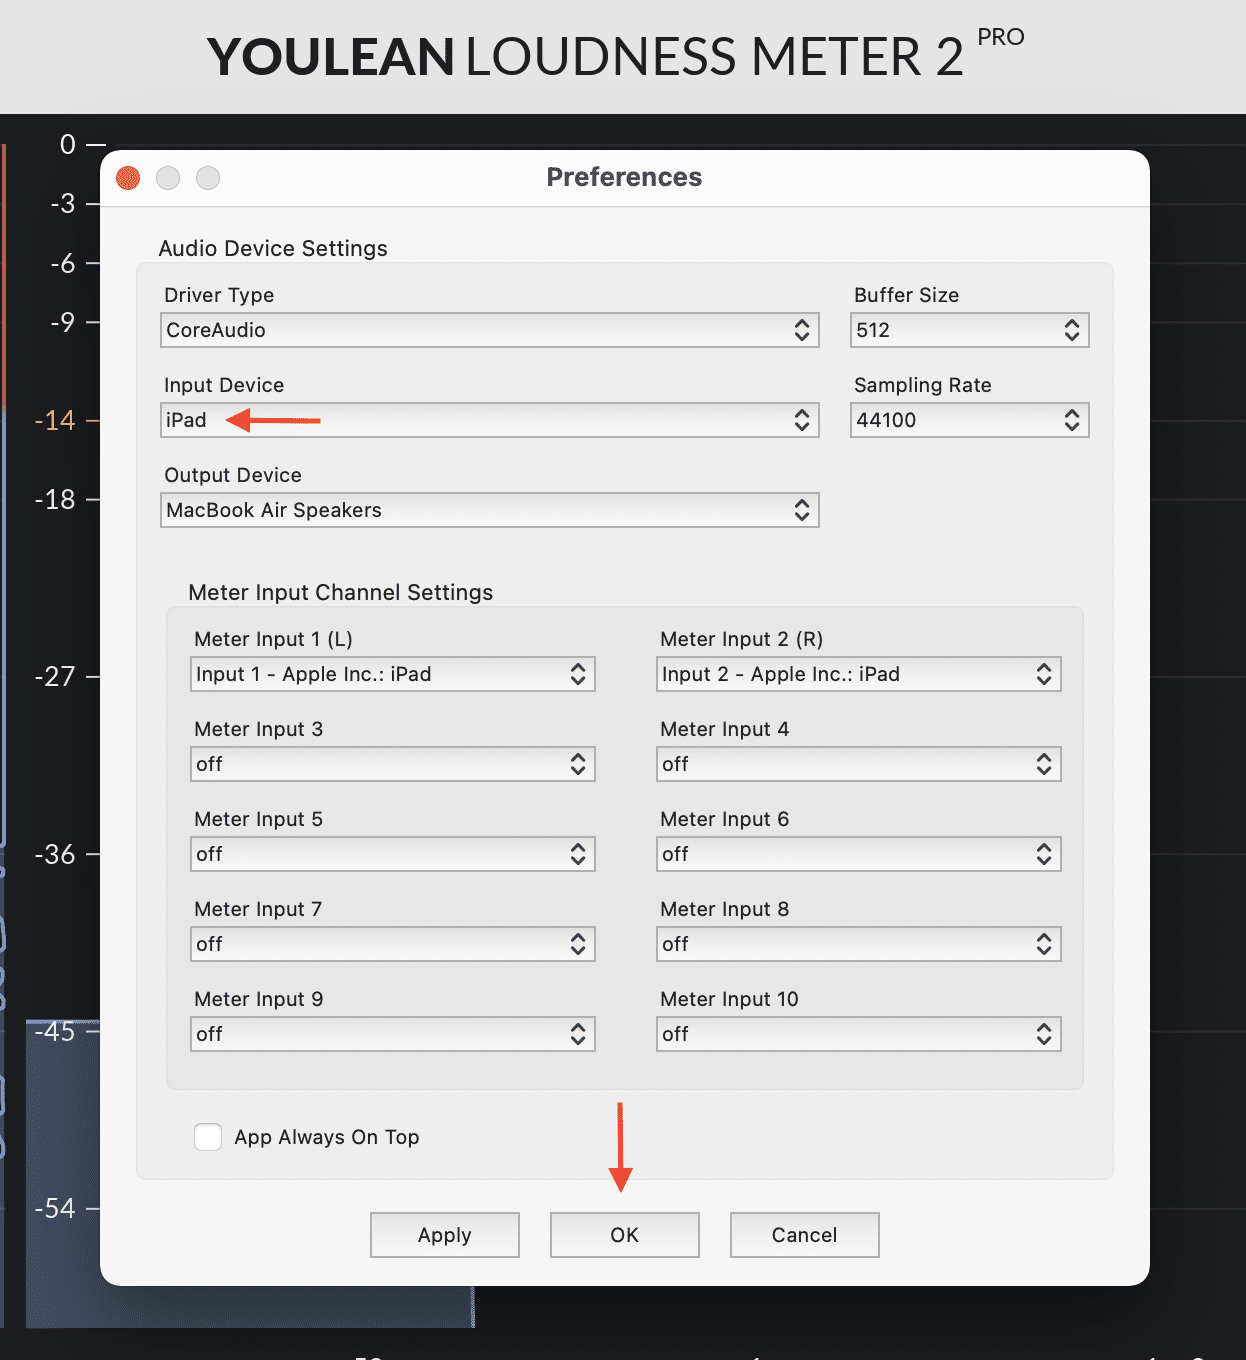 Set iPad as an input source inside Youlean Loudness Meter 2 Pro